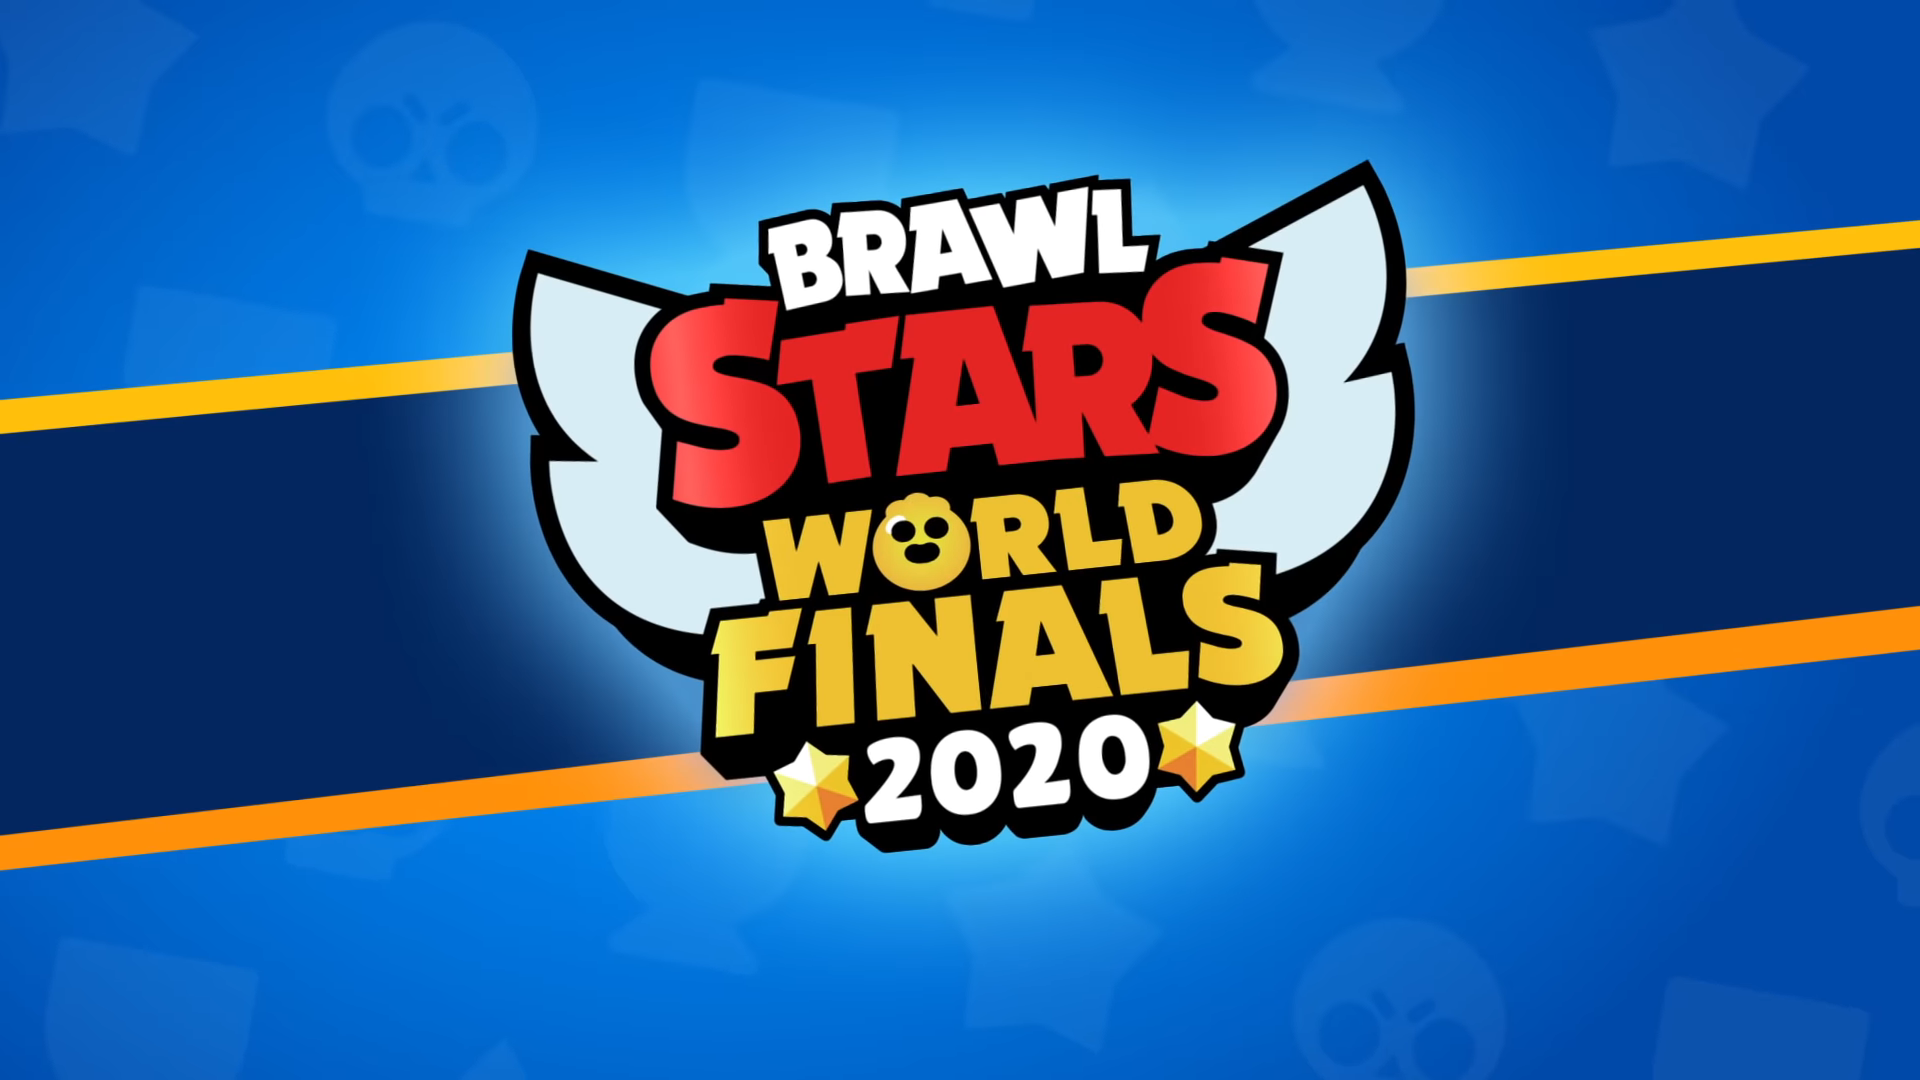 Supercell Partners With Esl For 2020 Brawl Stars Championship Dot Esports